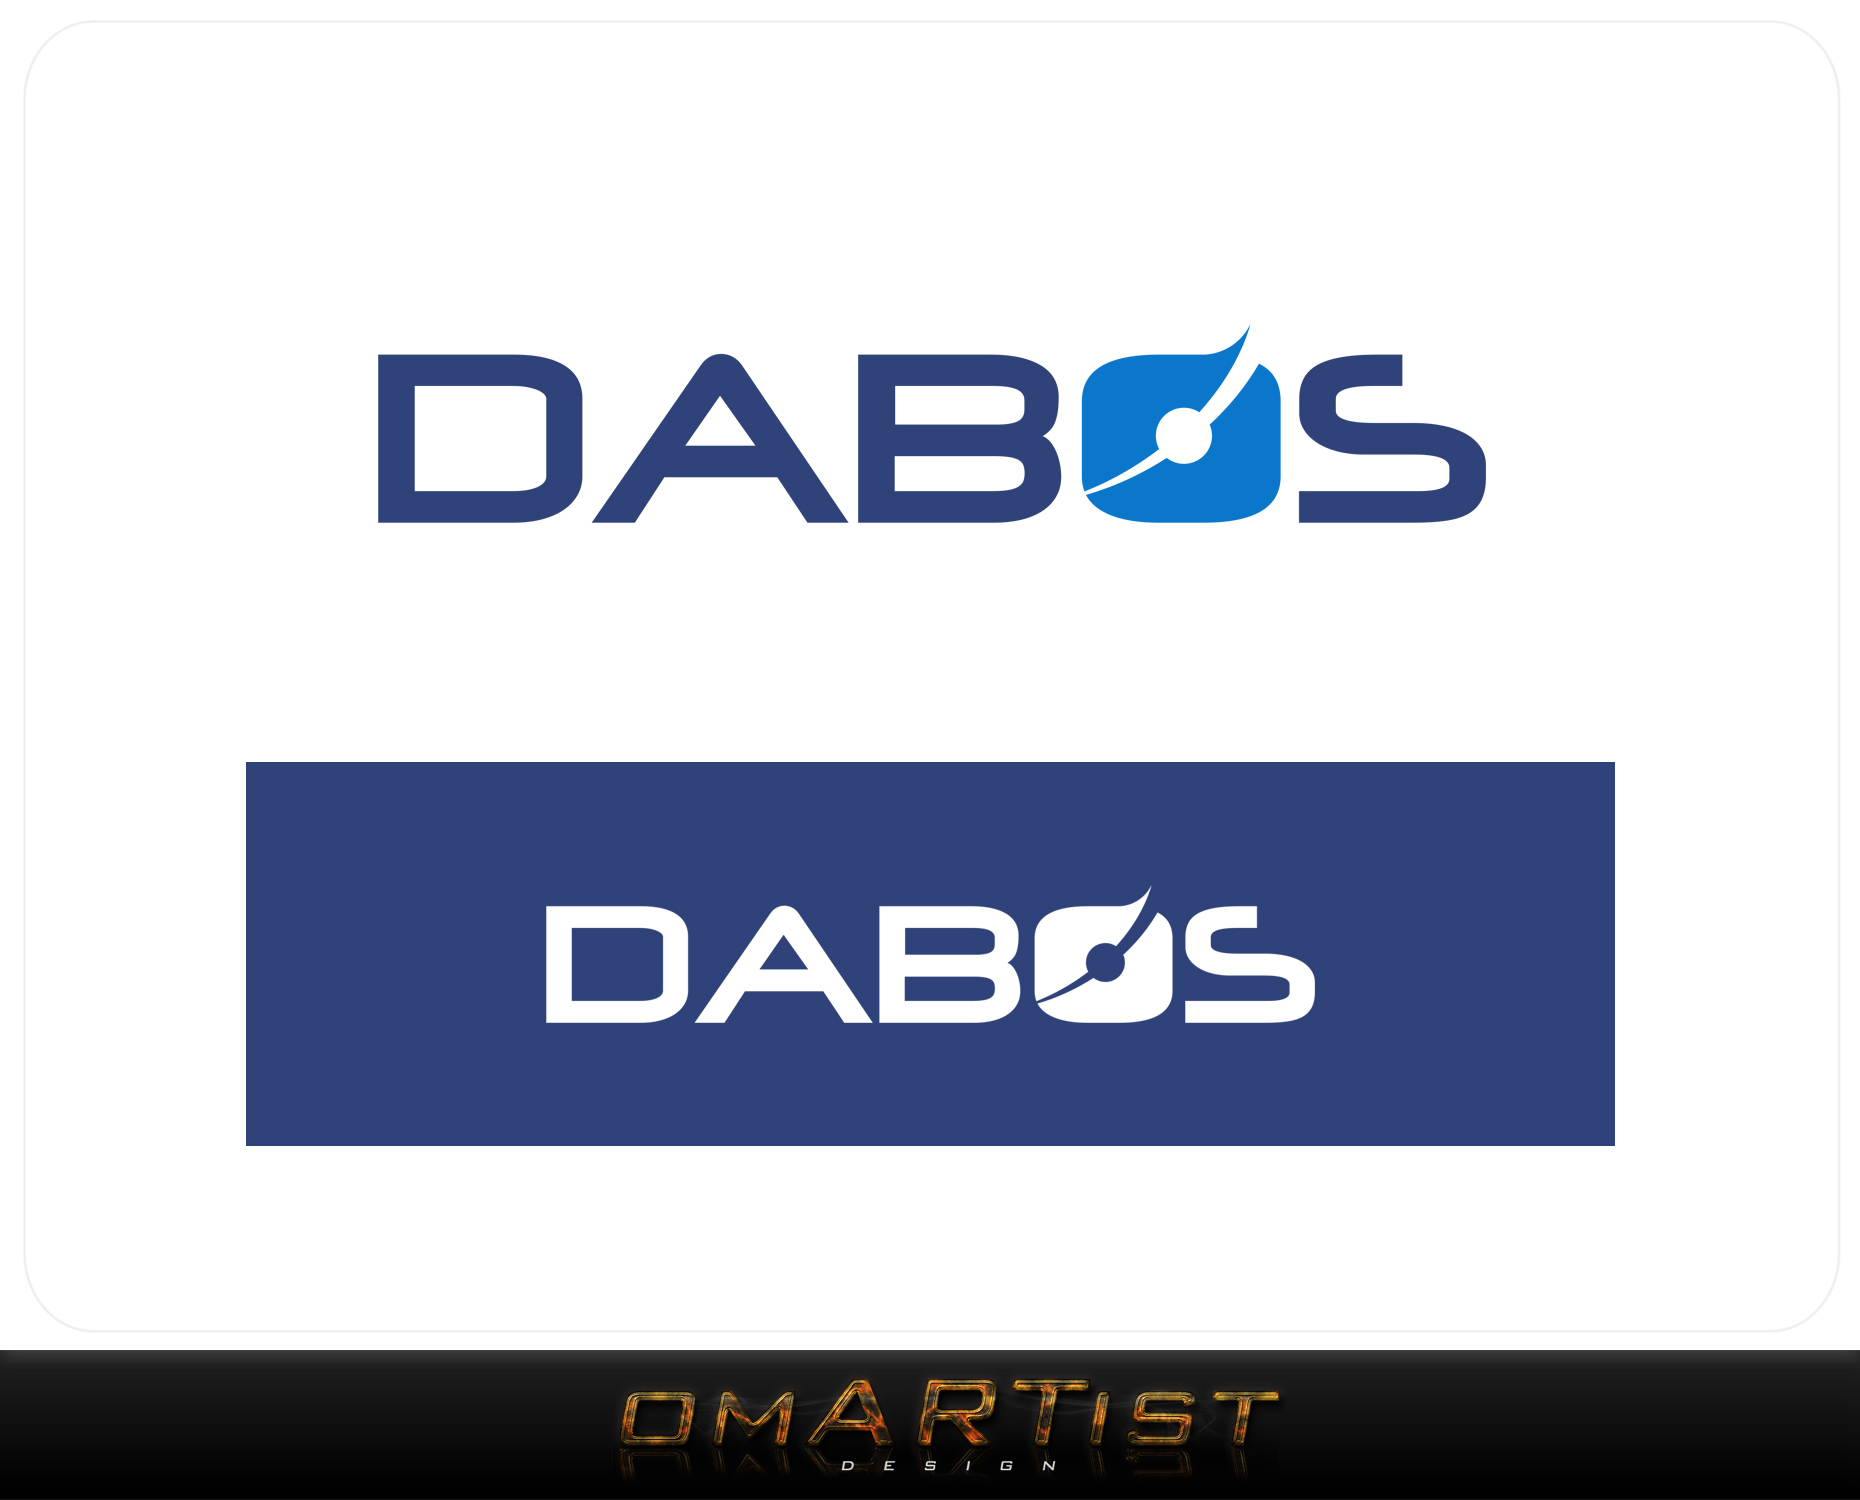 Logo Design by omARTist - Entry No. 133 in the Logo Design Contest Imaginative Logo Design for DABOS, Limited Liability Company.